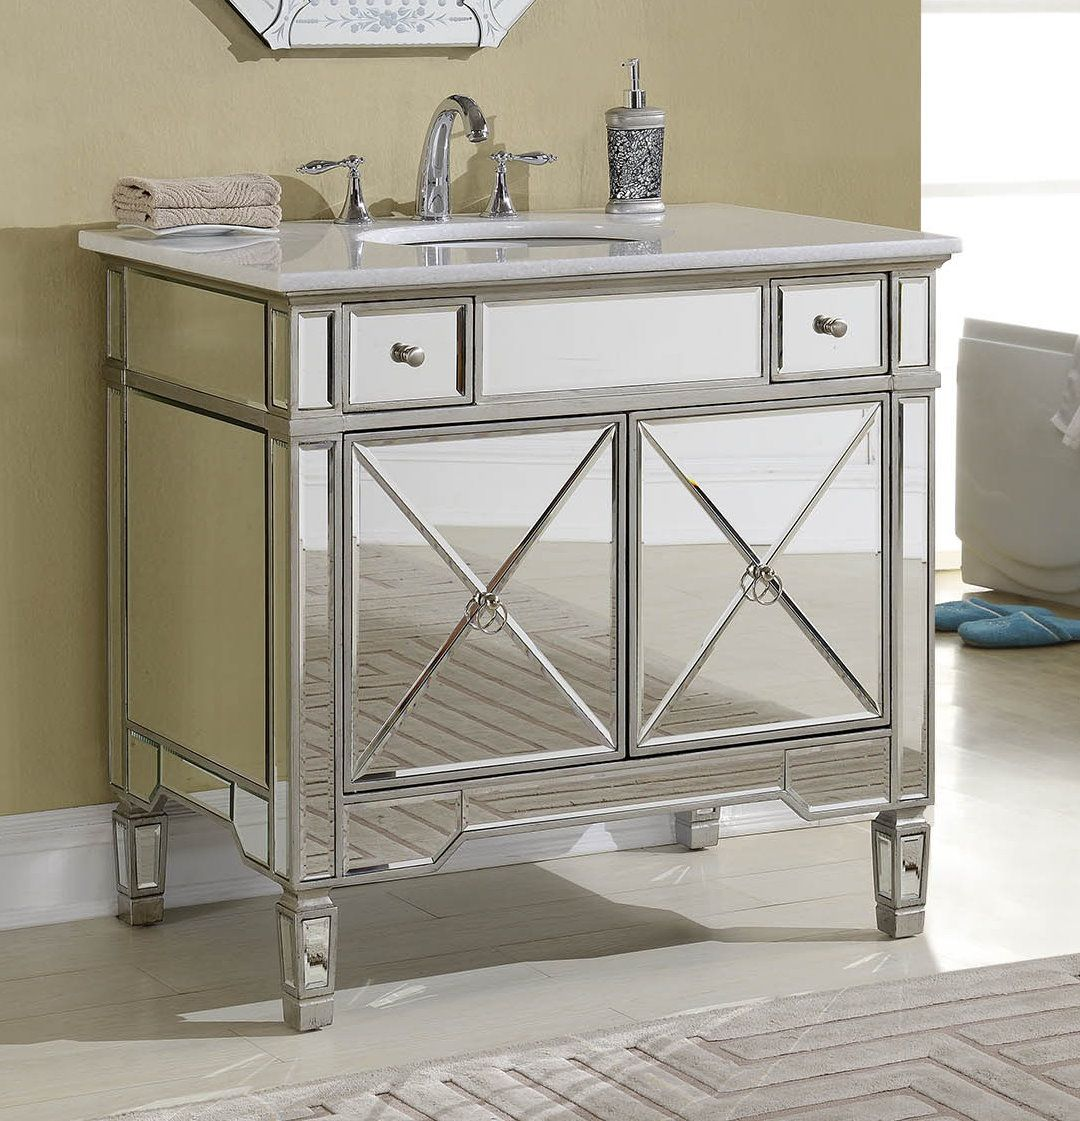 Mirrored Bathroom Vanity With Sink This Adelina 36 Inch Mirrored Silver Bathroom Vanity Will